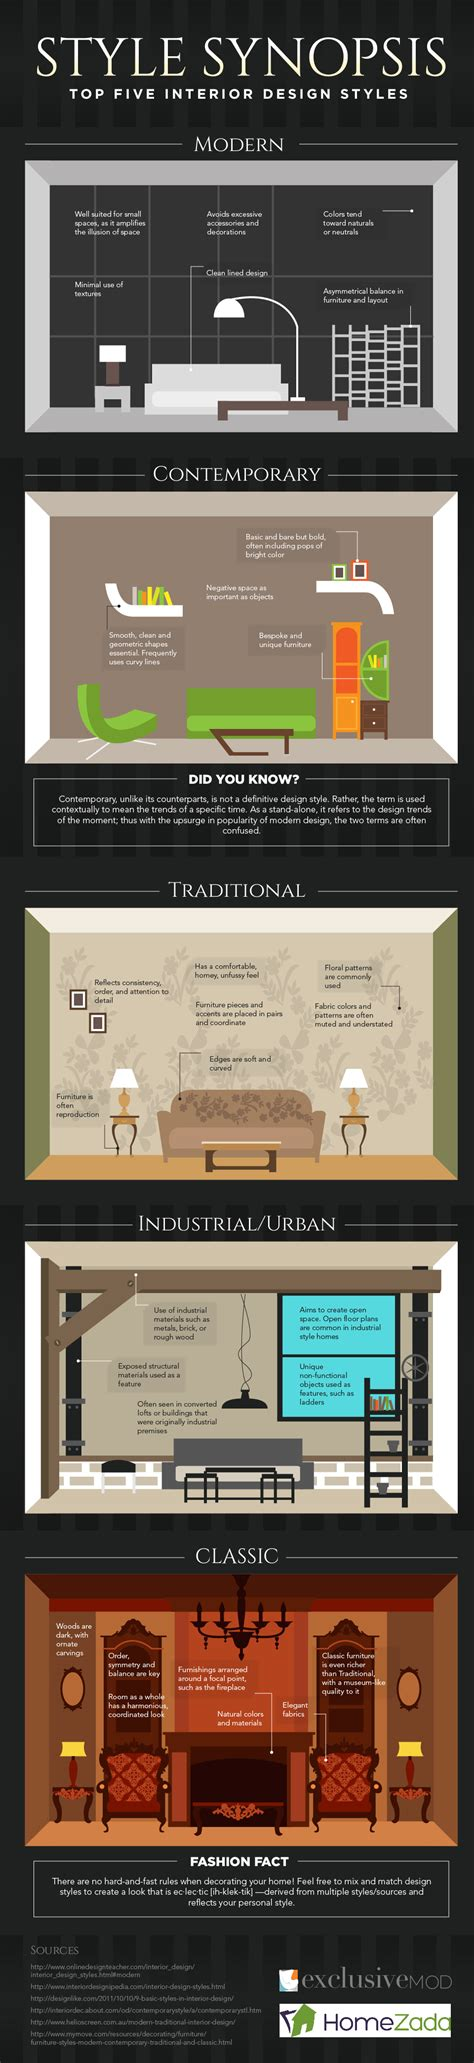 guide for interior design styles style synopsis the top 5 interior design styles infographic